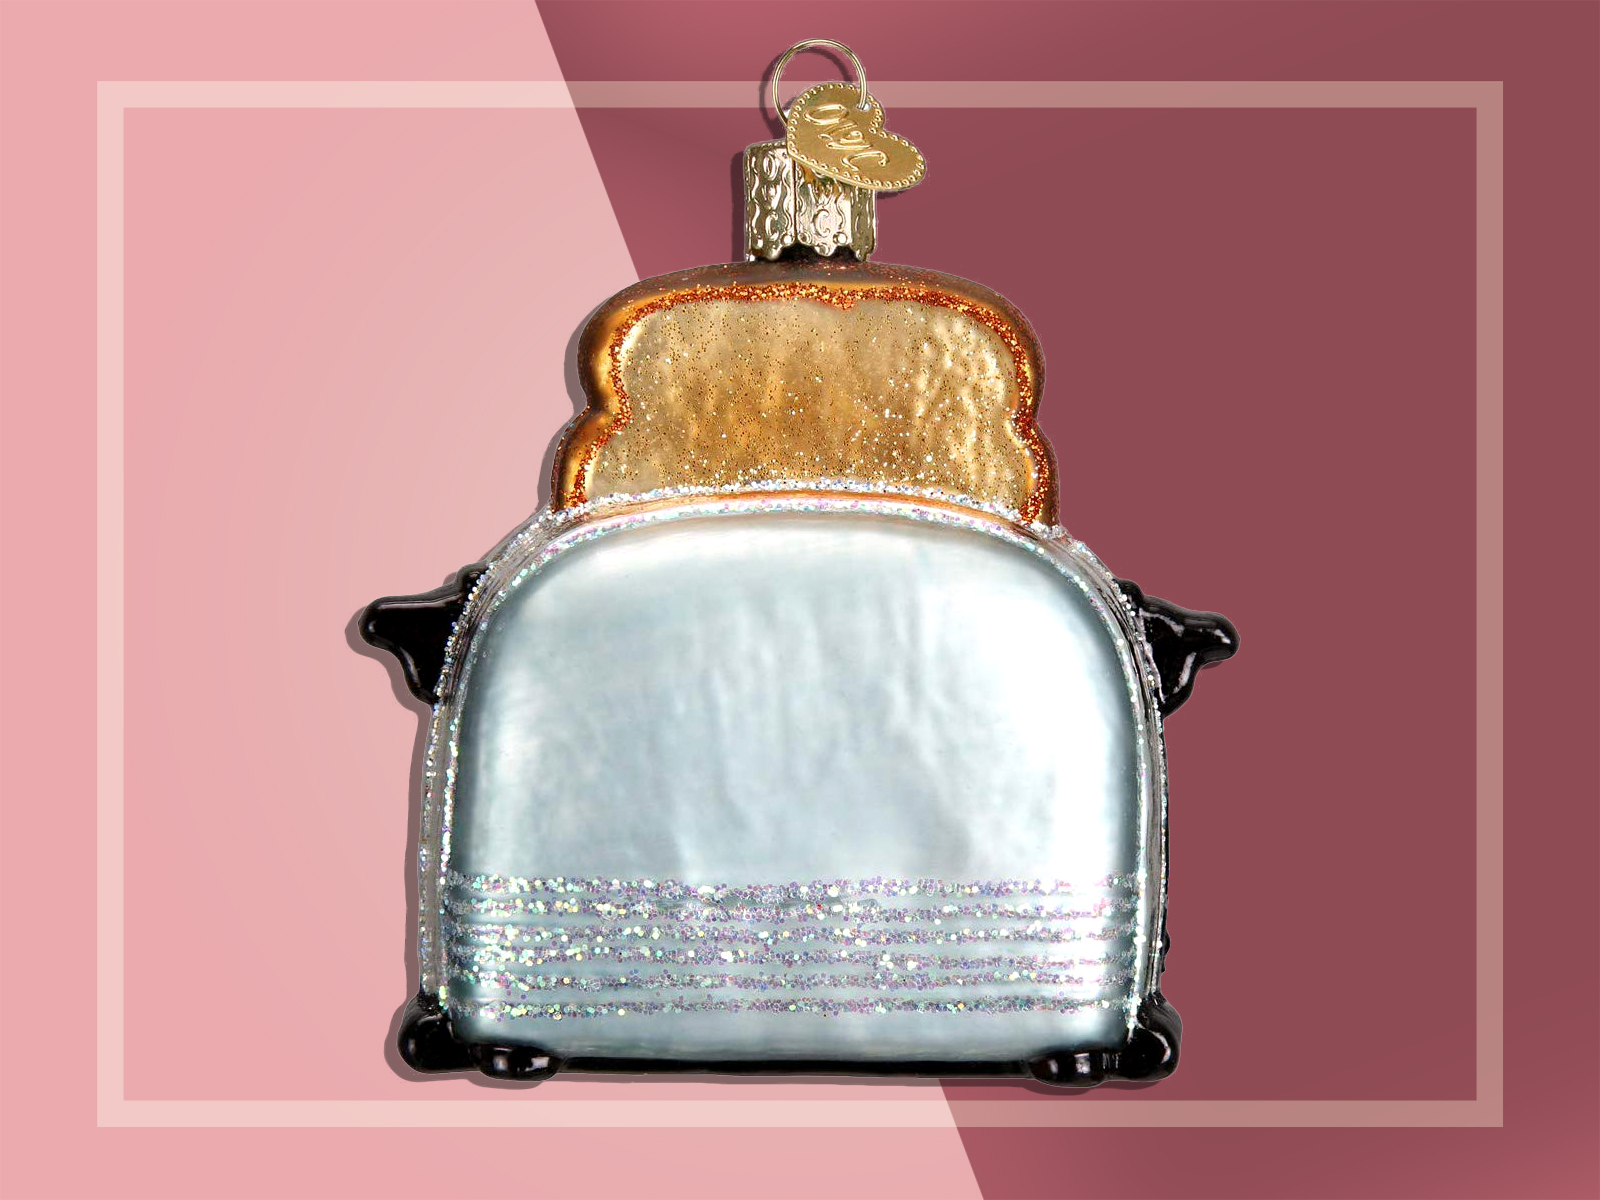 Toaster Ornament